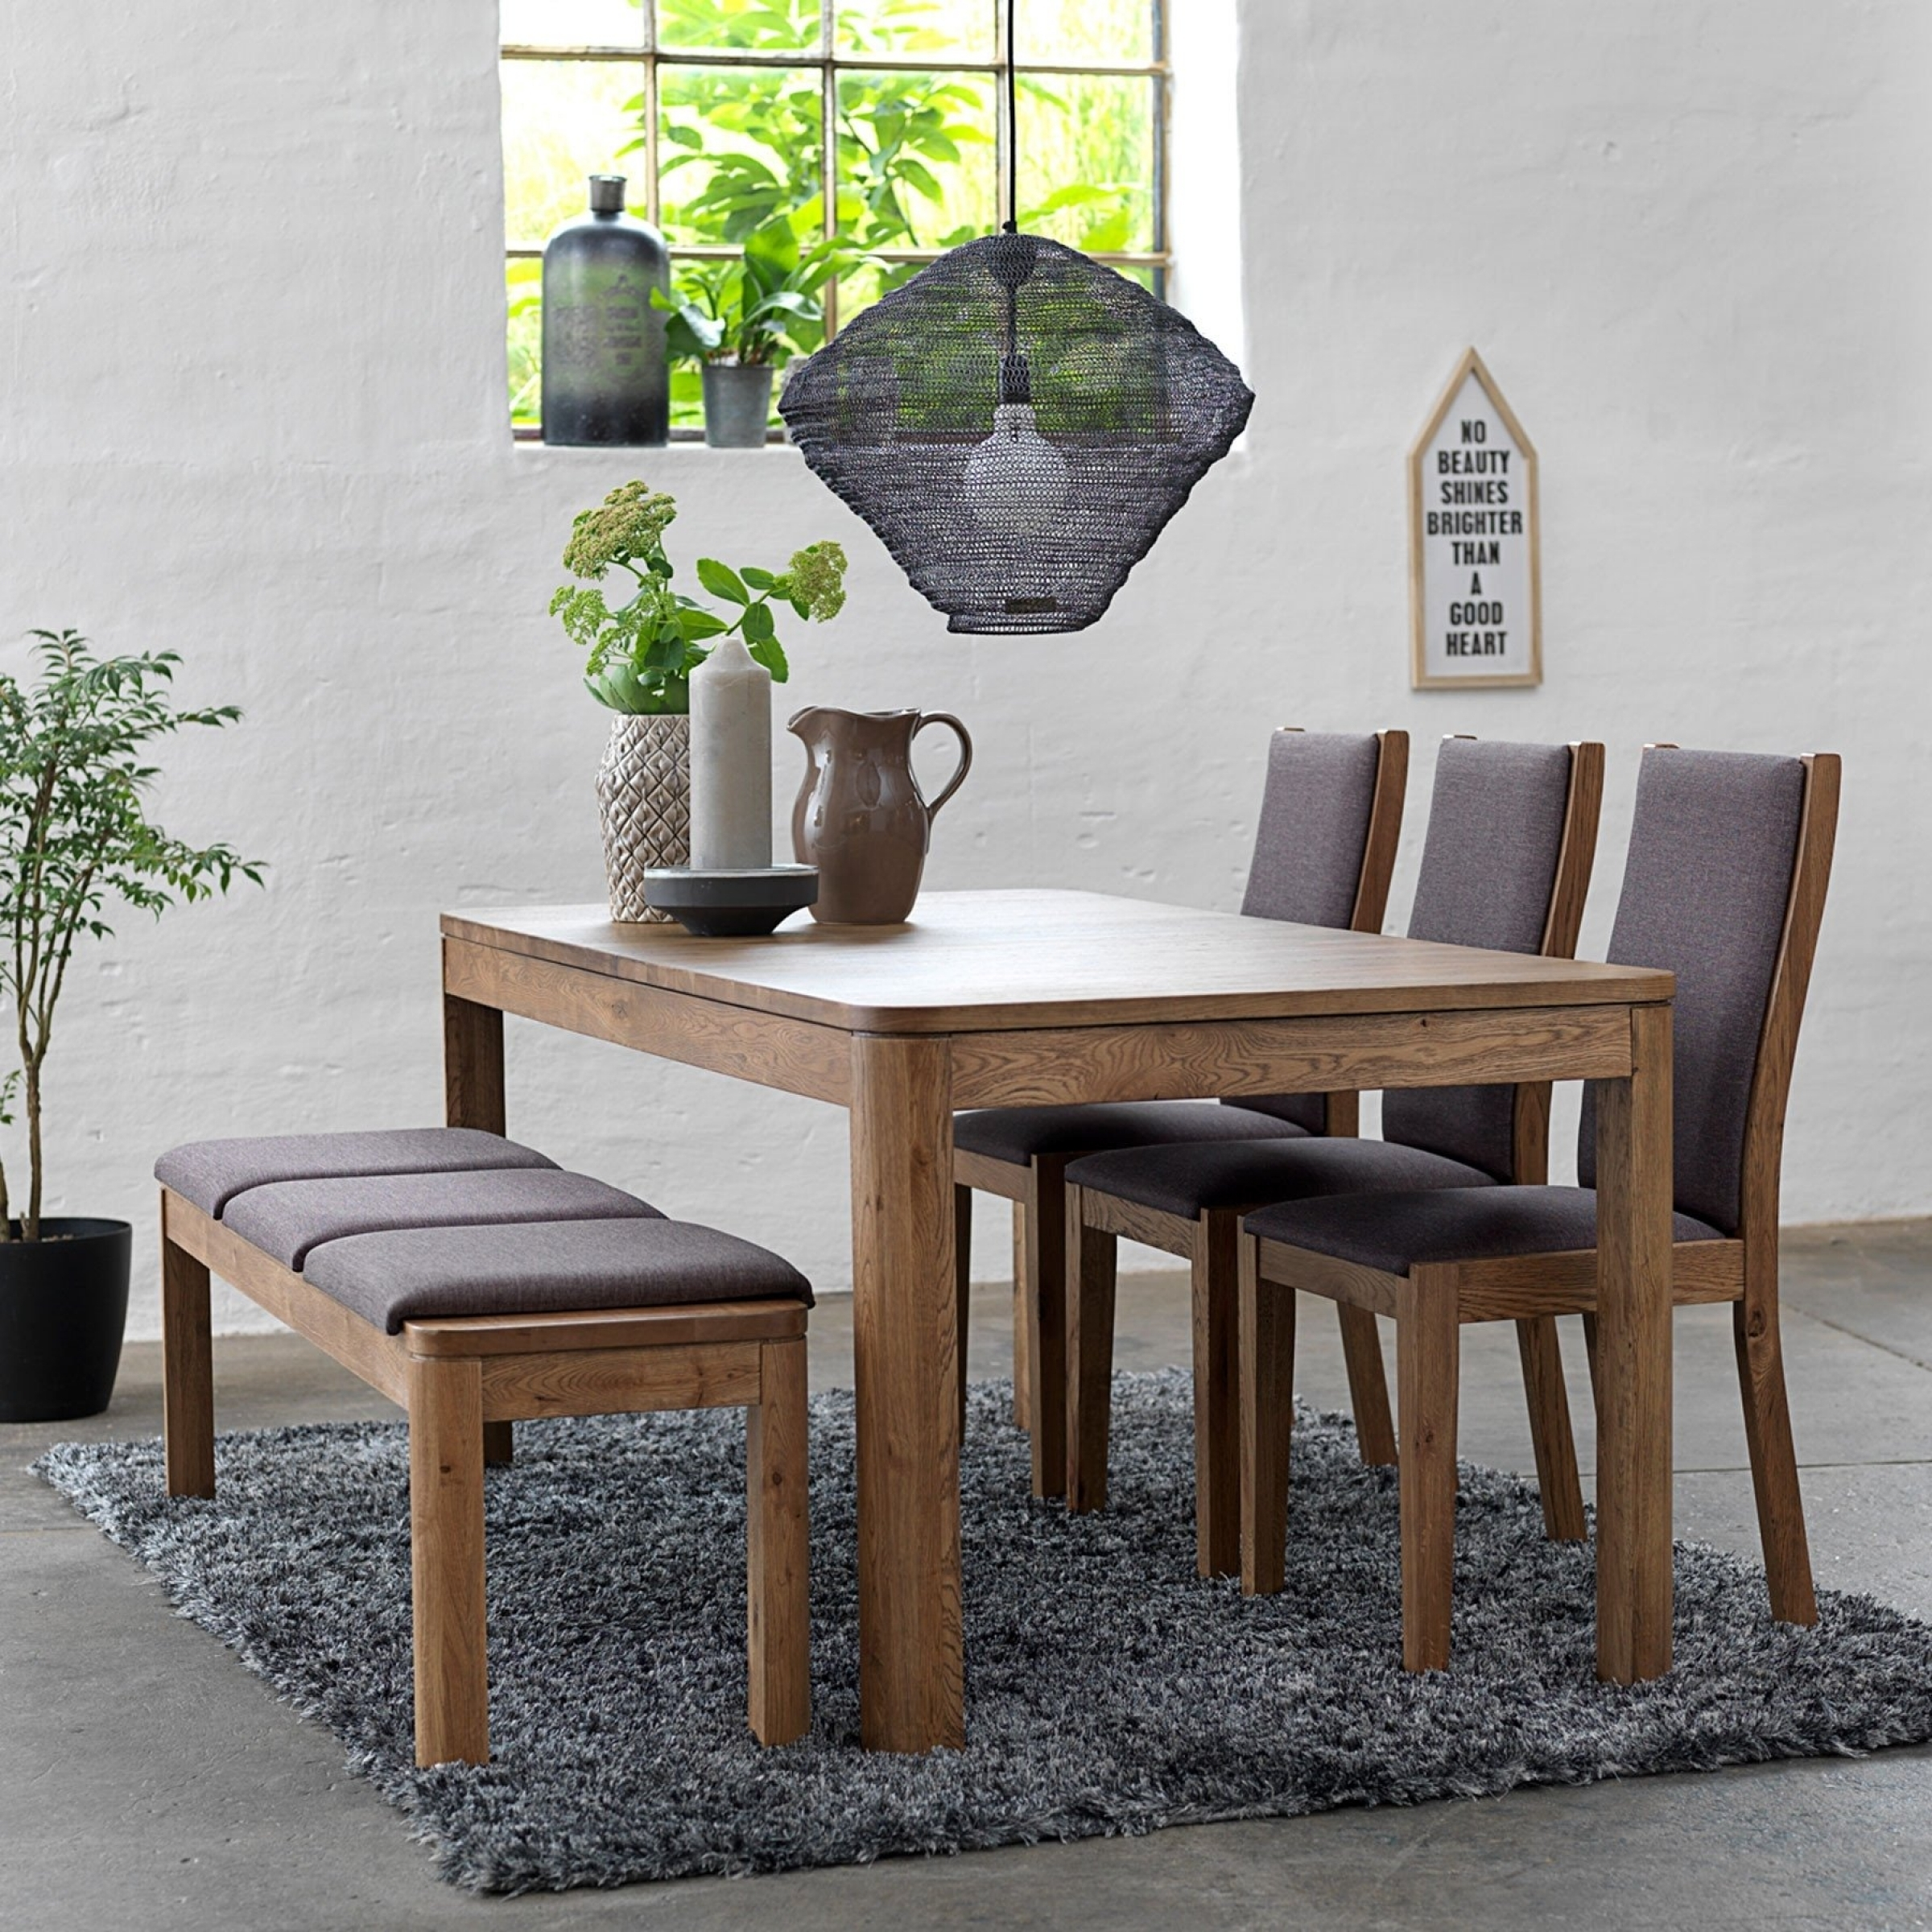 Picture of: Dining Table With Bench You Ll Love In 2020 Visualhunt